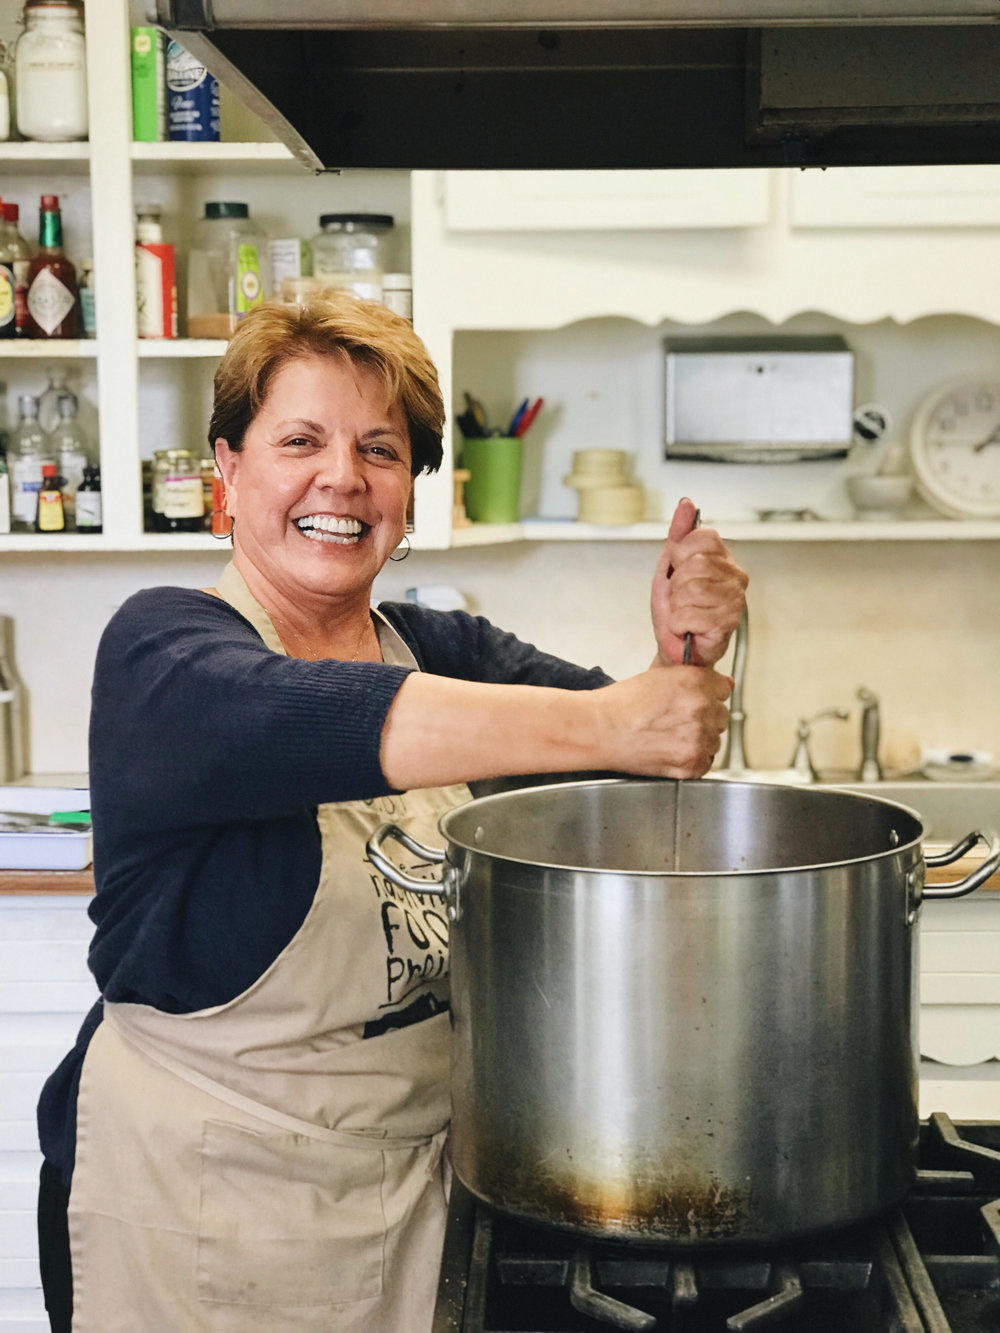 """November 2017: Judi Blondell Hardy """"Judi is an absolute treasure. Through her upbeat, spunky attitude and passion for good food, she brings JOY to everything she makes and everyone she encounters at TNFP (and also brings countless kitchen needs). We are so lucky to have her as a regular volunteer!"""""""